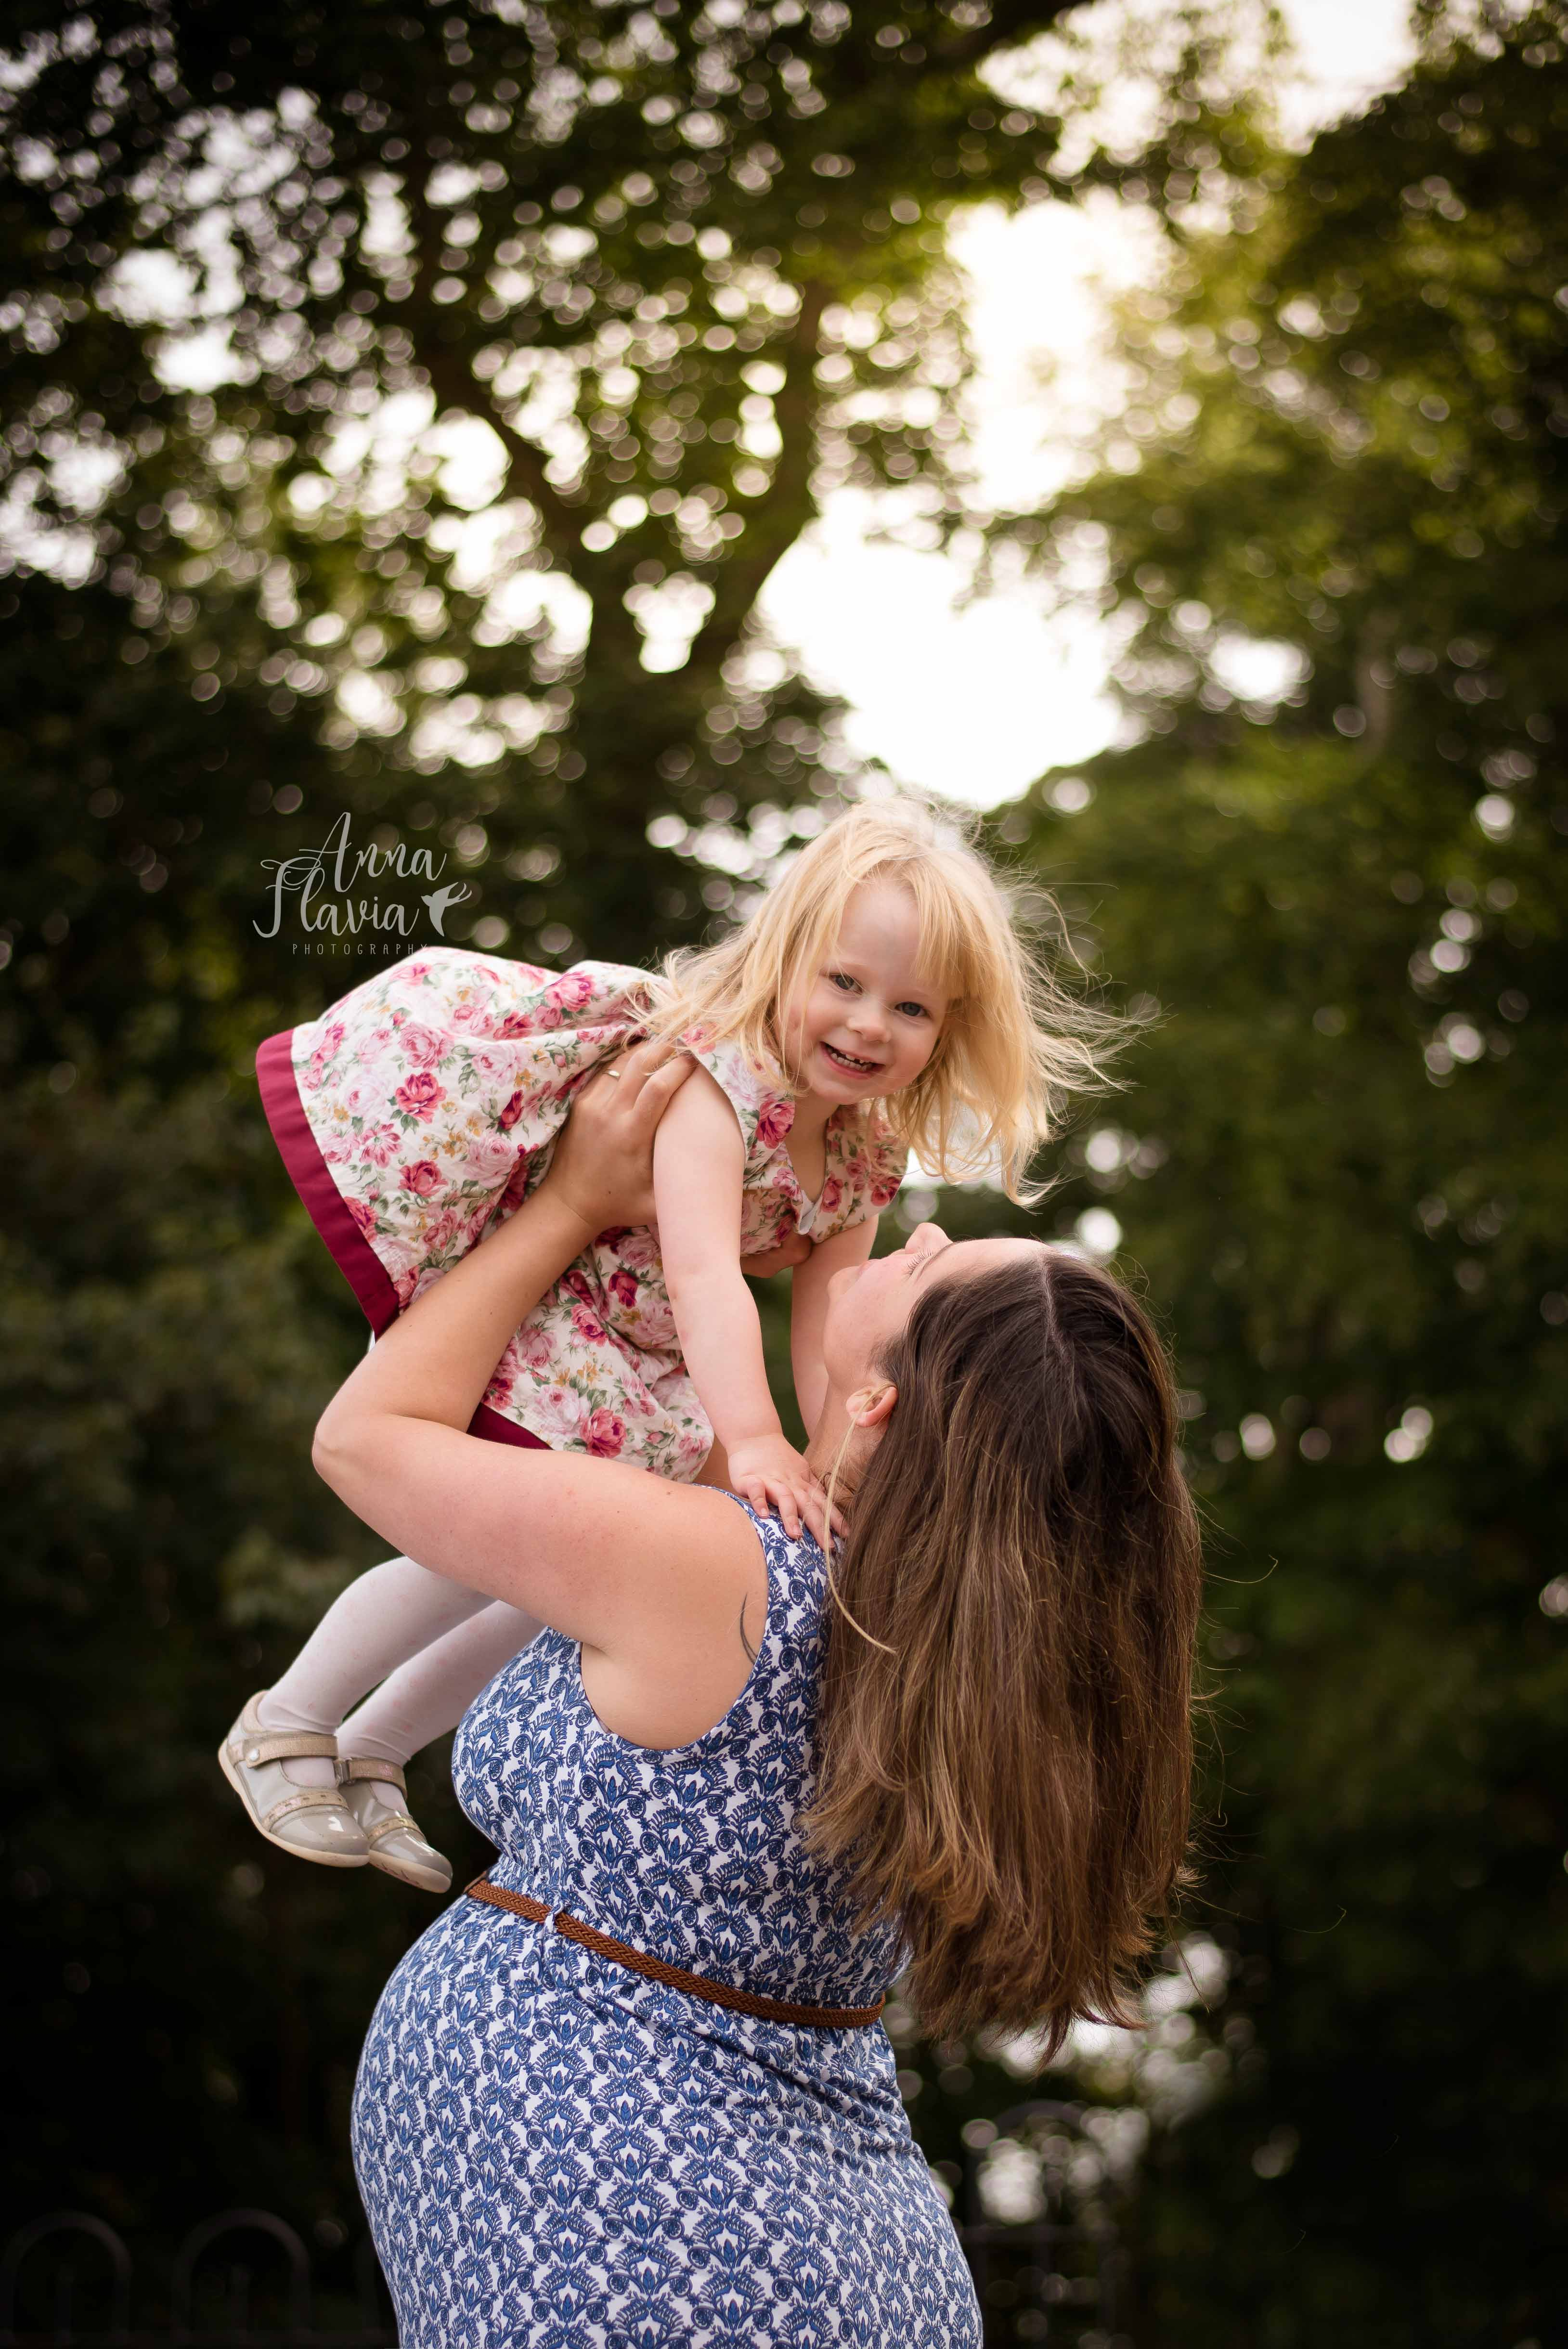 photographer_dublin_anna_flavia_maternity_newborn_family_1